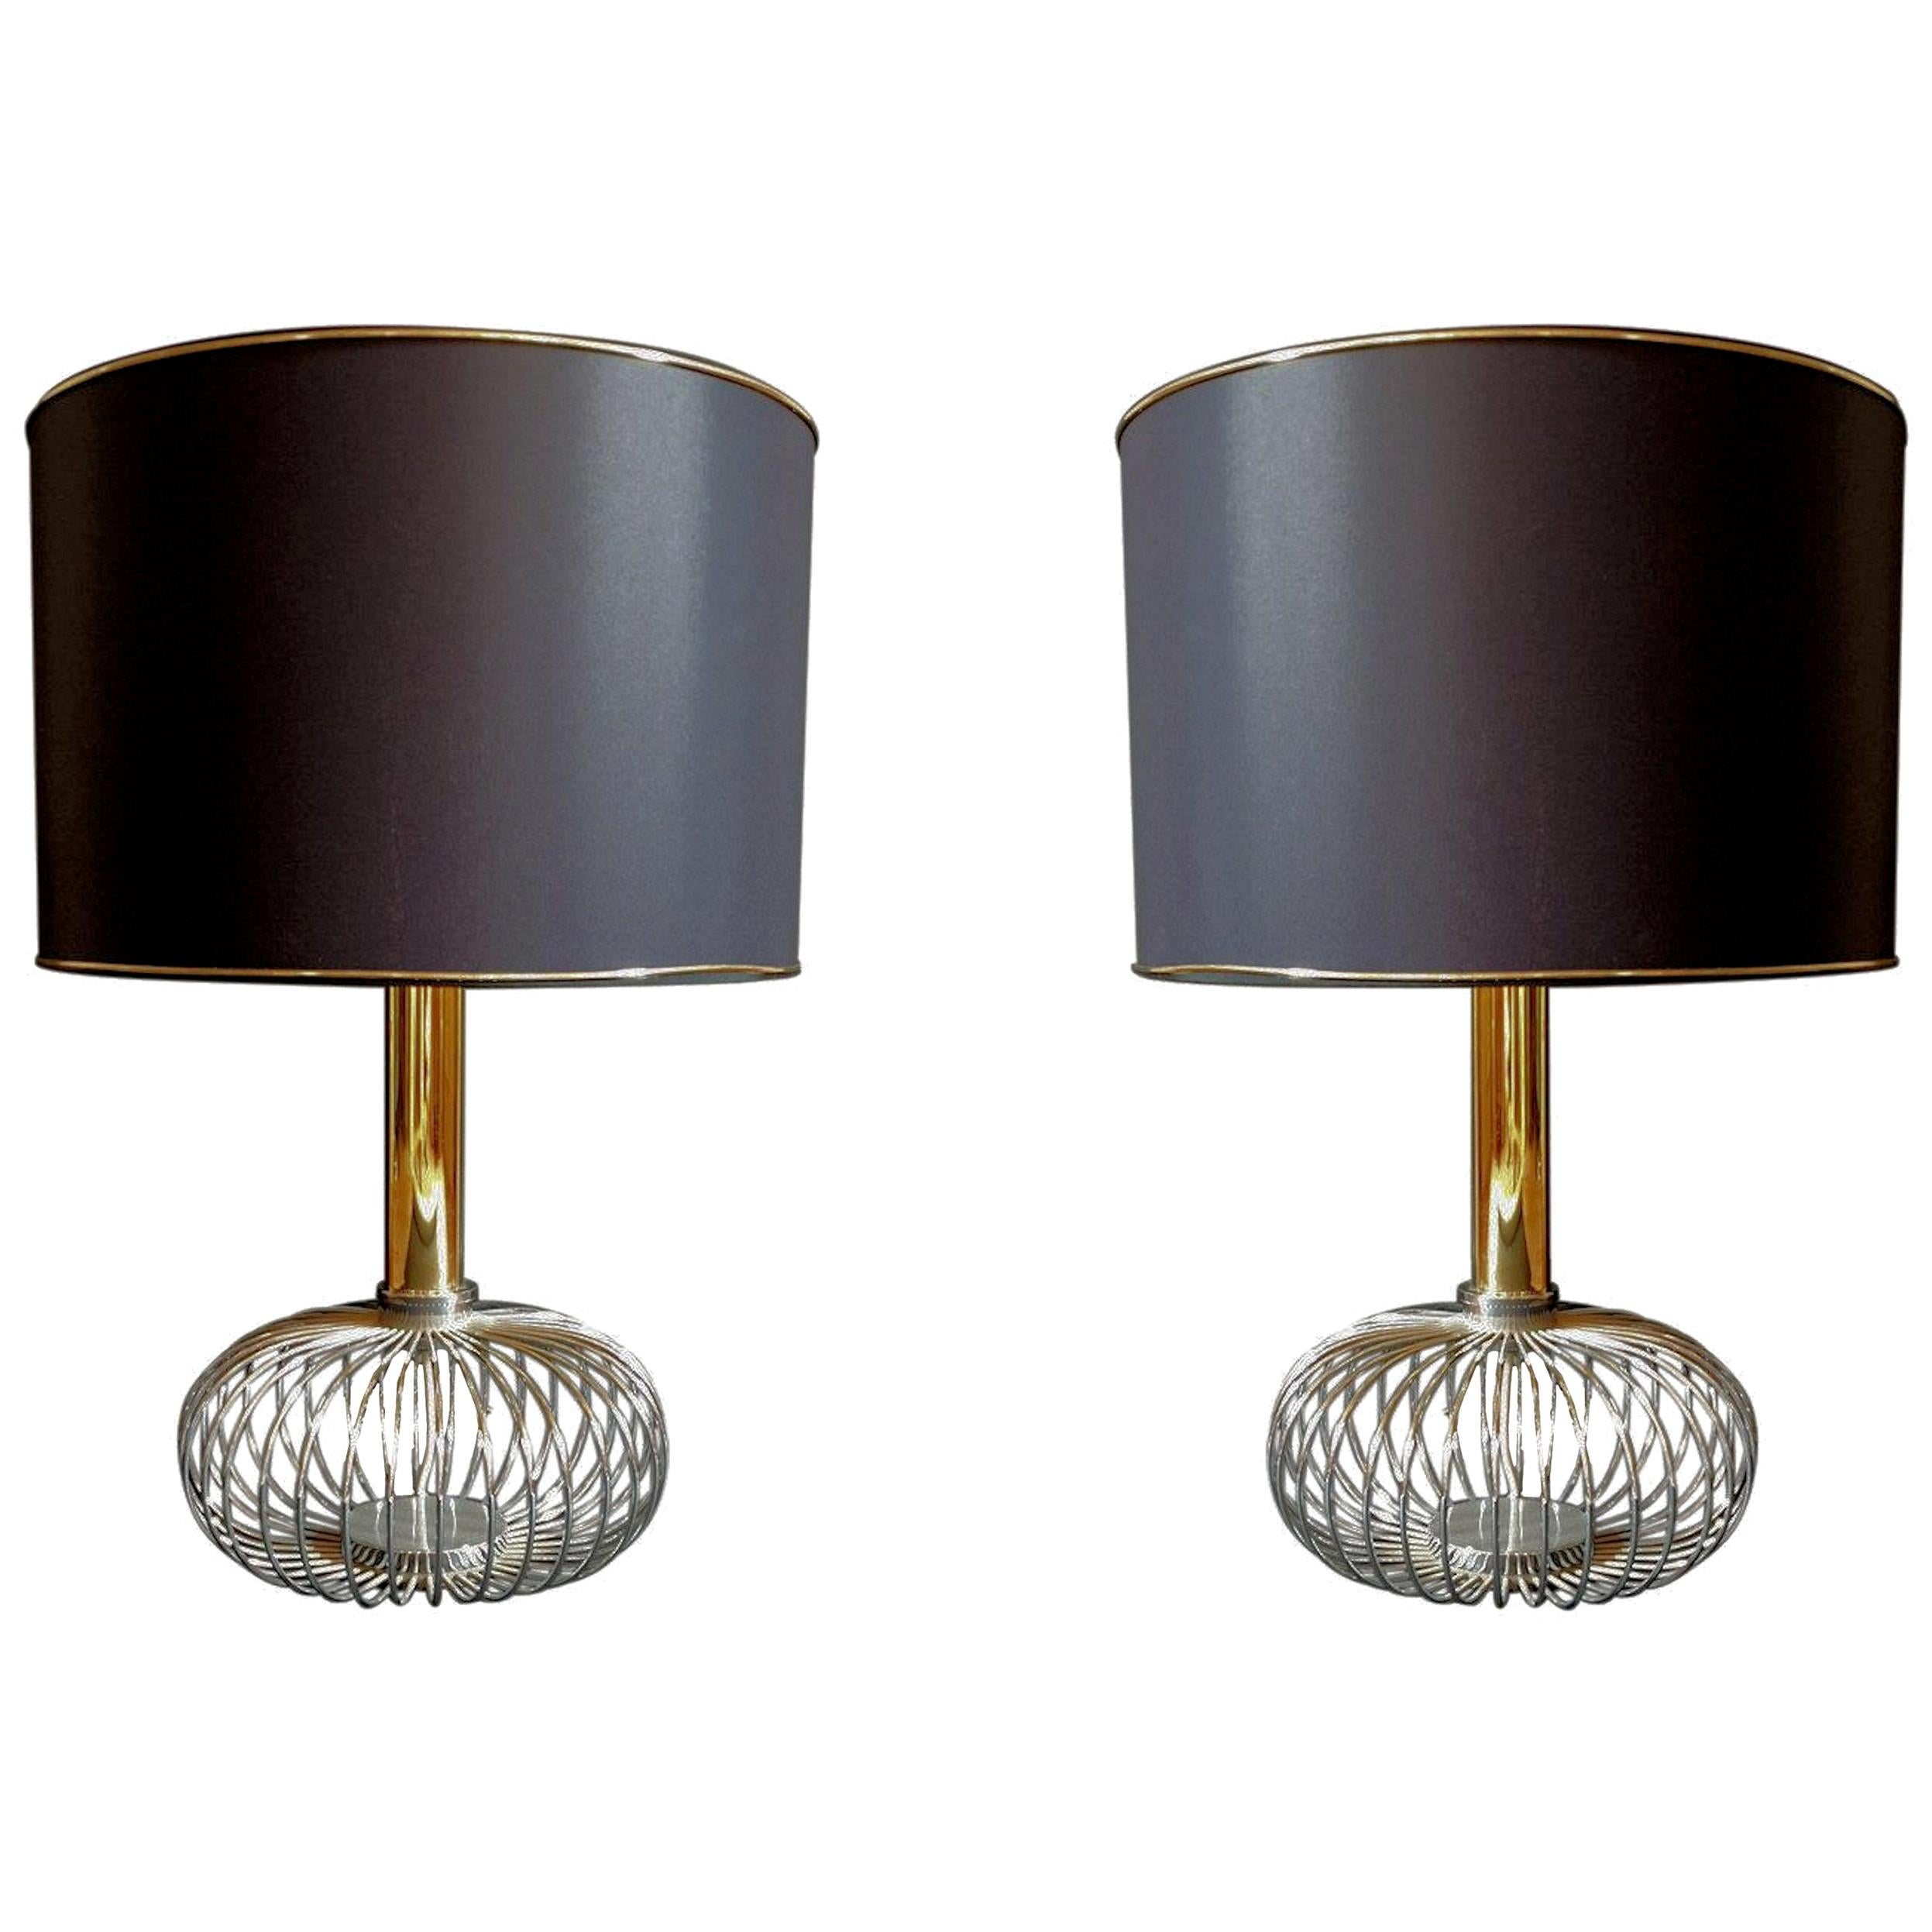 Pair of Chrome and Brass Mid-Century Modern Table Lamps, Sciolari Style, 1970s